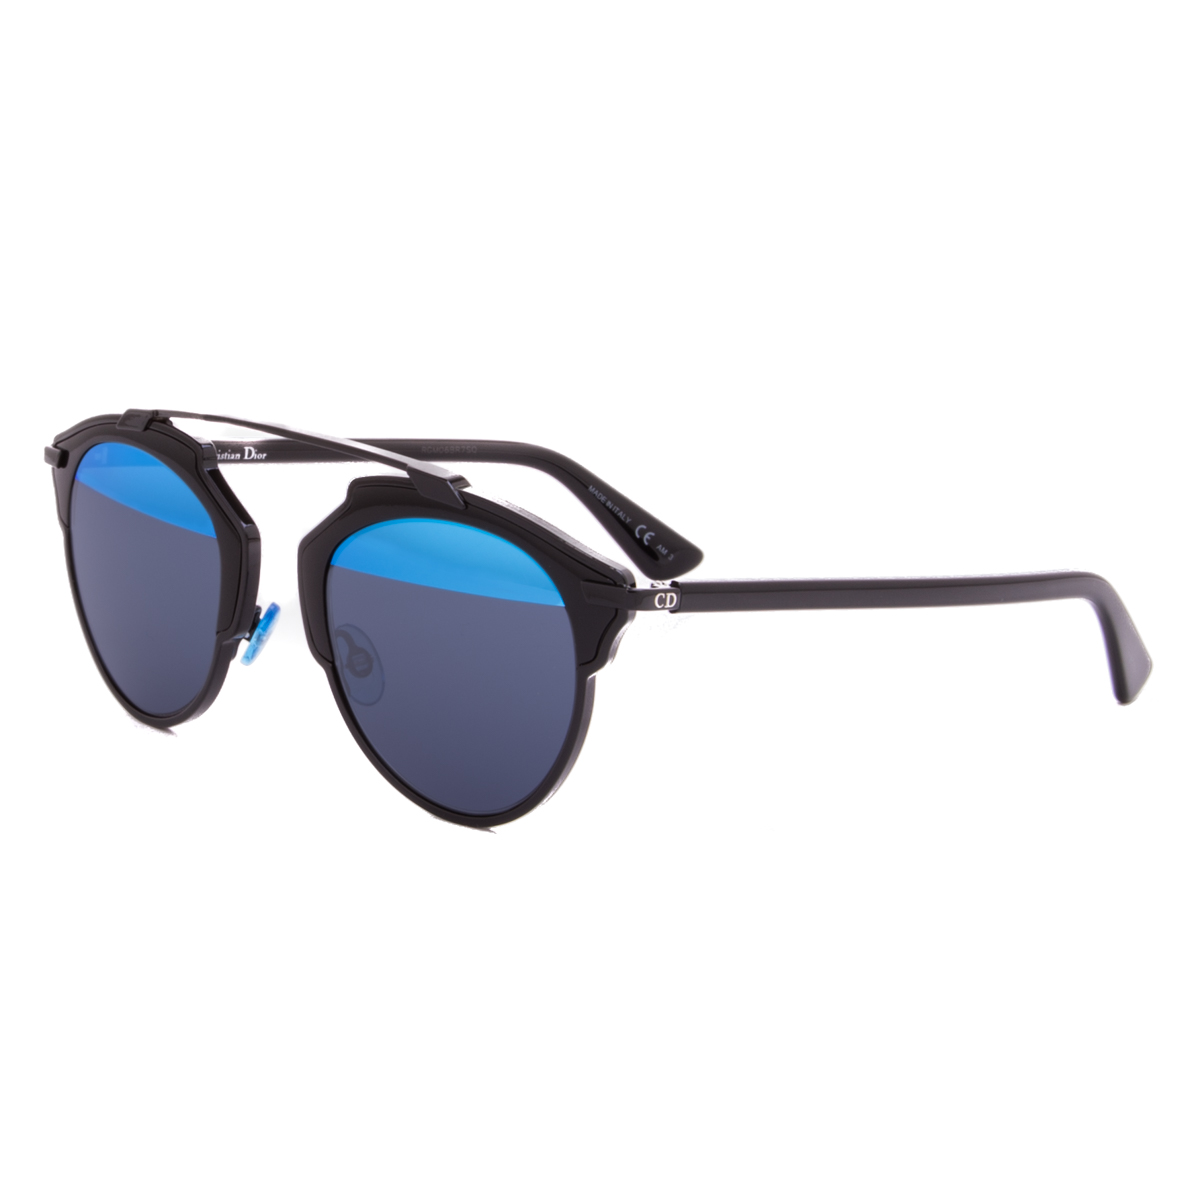 Dior Glasses Frame 2014 : Christian Dior Sunglasses Dior So Real B0YY0 Black Frame ...